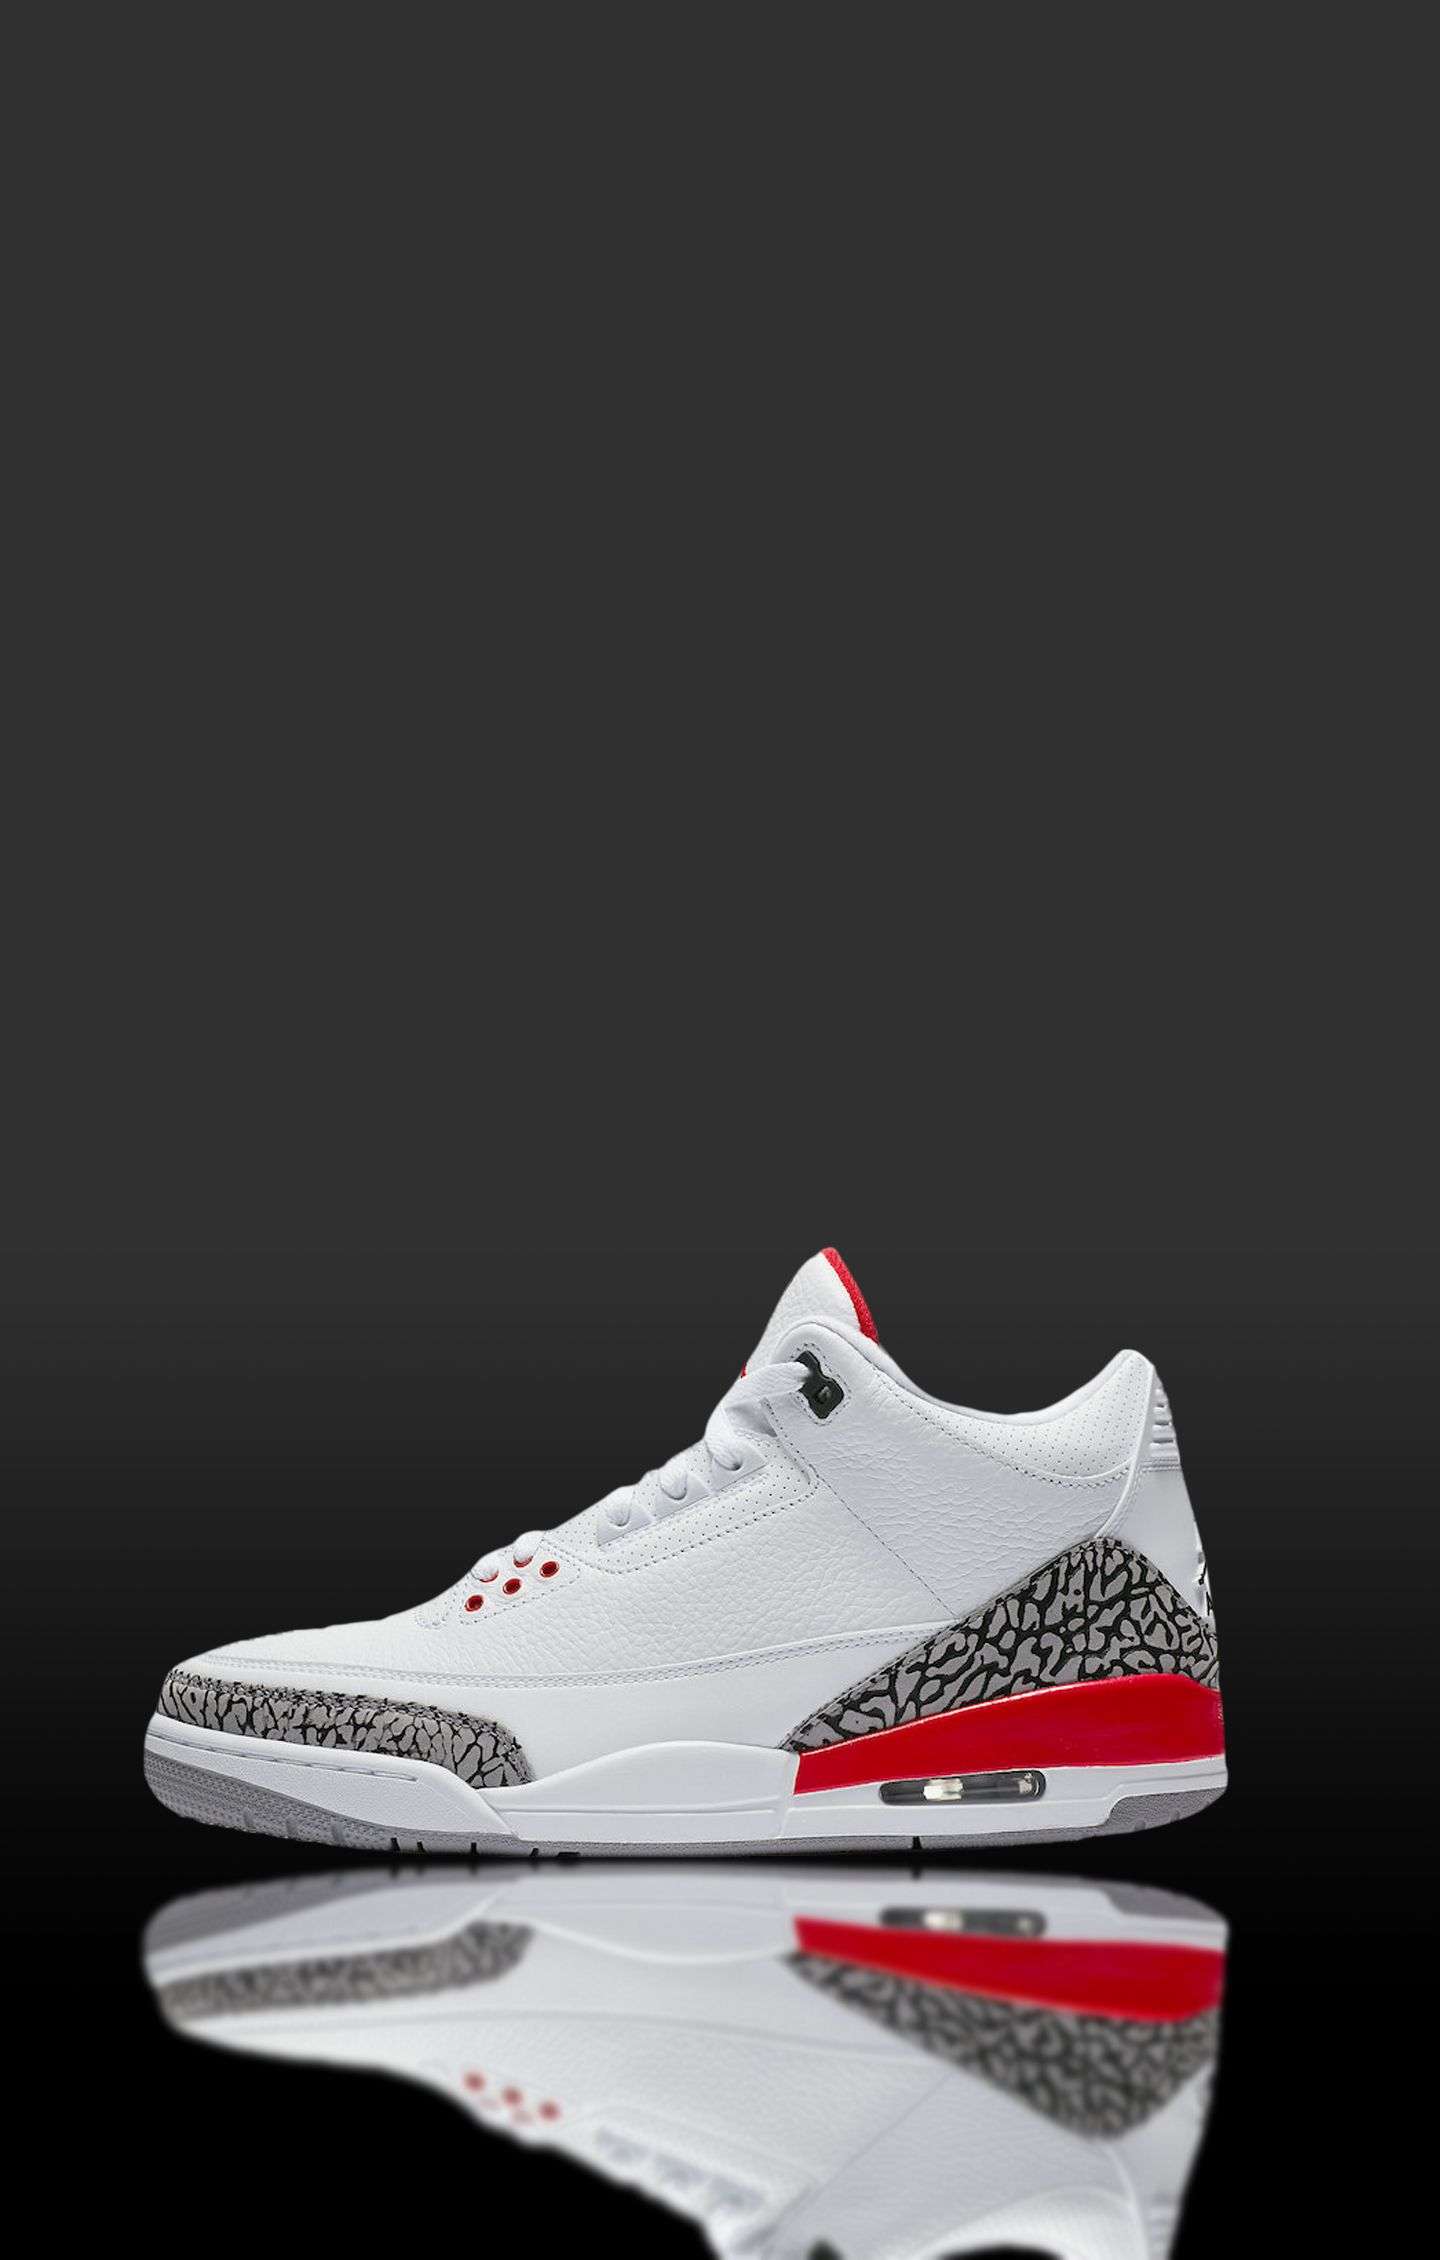 brand new f6c56 62937 Check out this pair of 5/12 Jordan Retro 3